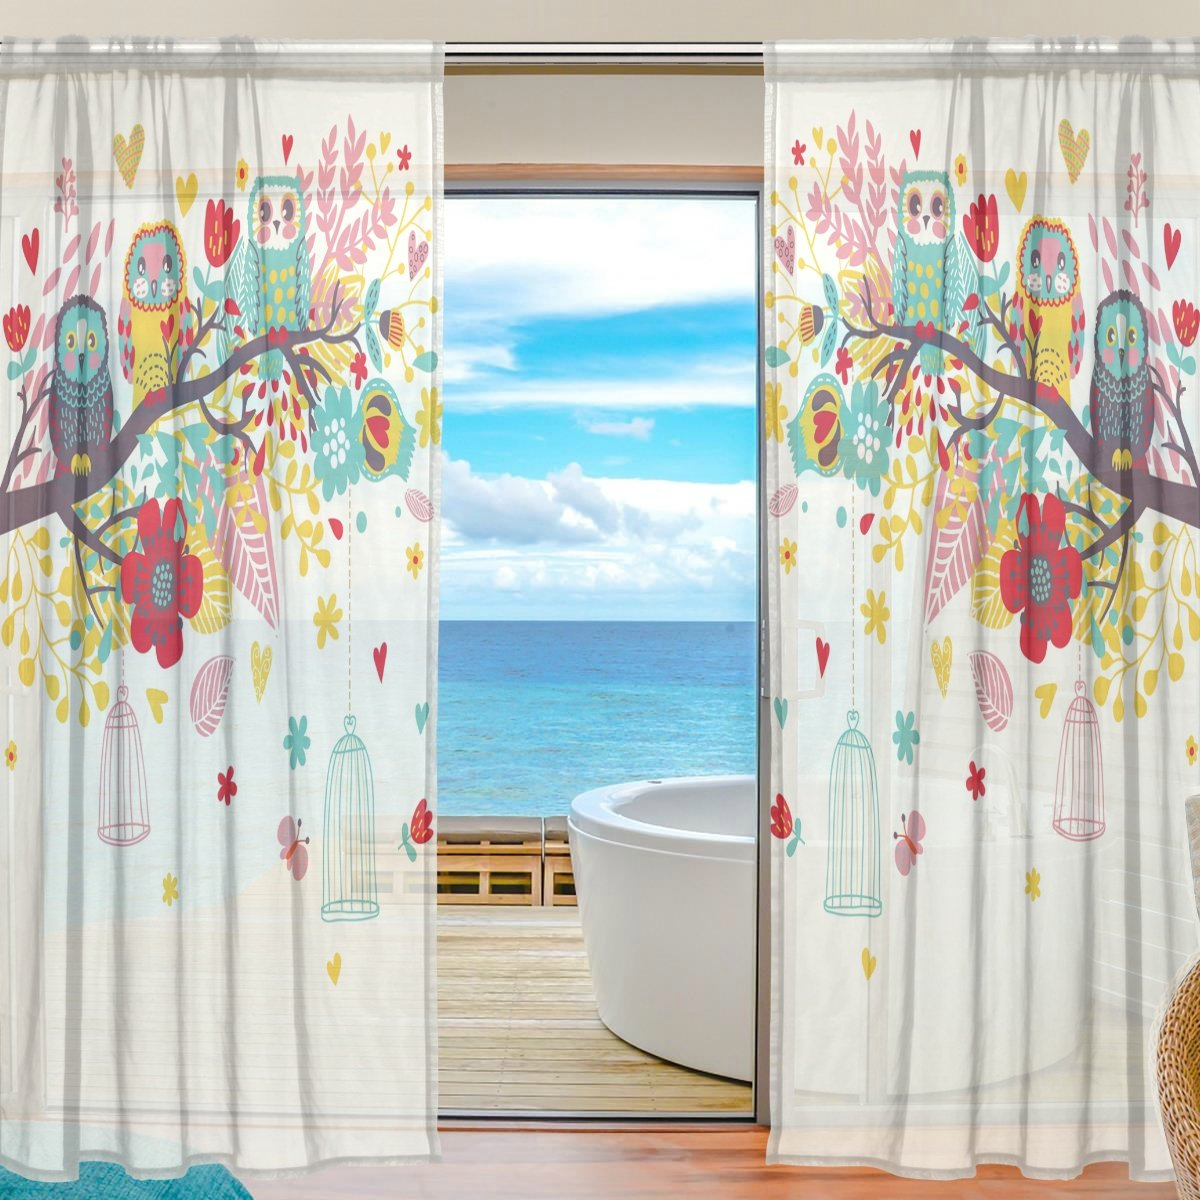 SEULIFE Window Sheer Curtain Animal Owl Tree Flower Voile Curtain Drapes for Door Kitchen Living Room Bedroom 55x78 inches 2 Panels